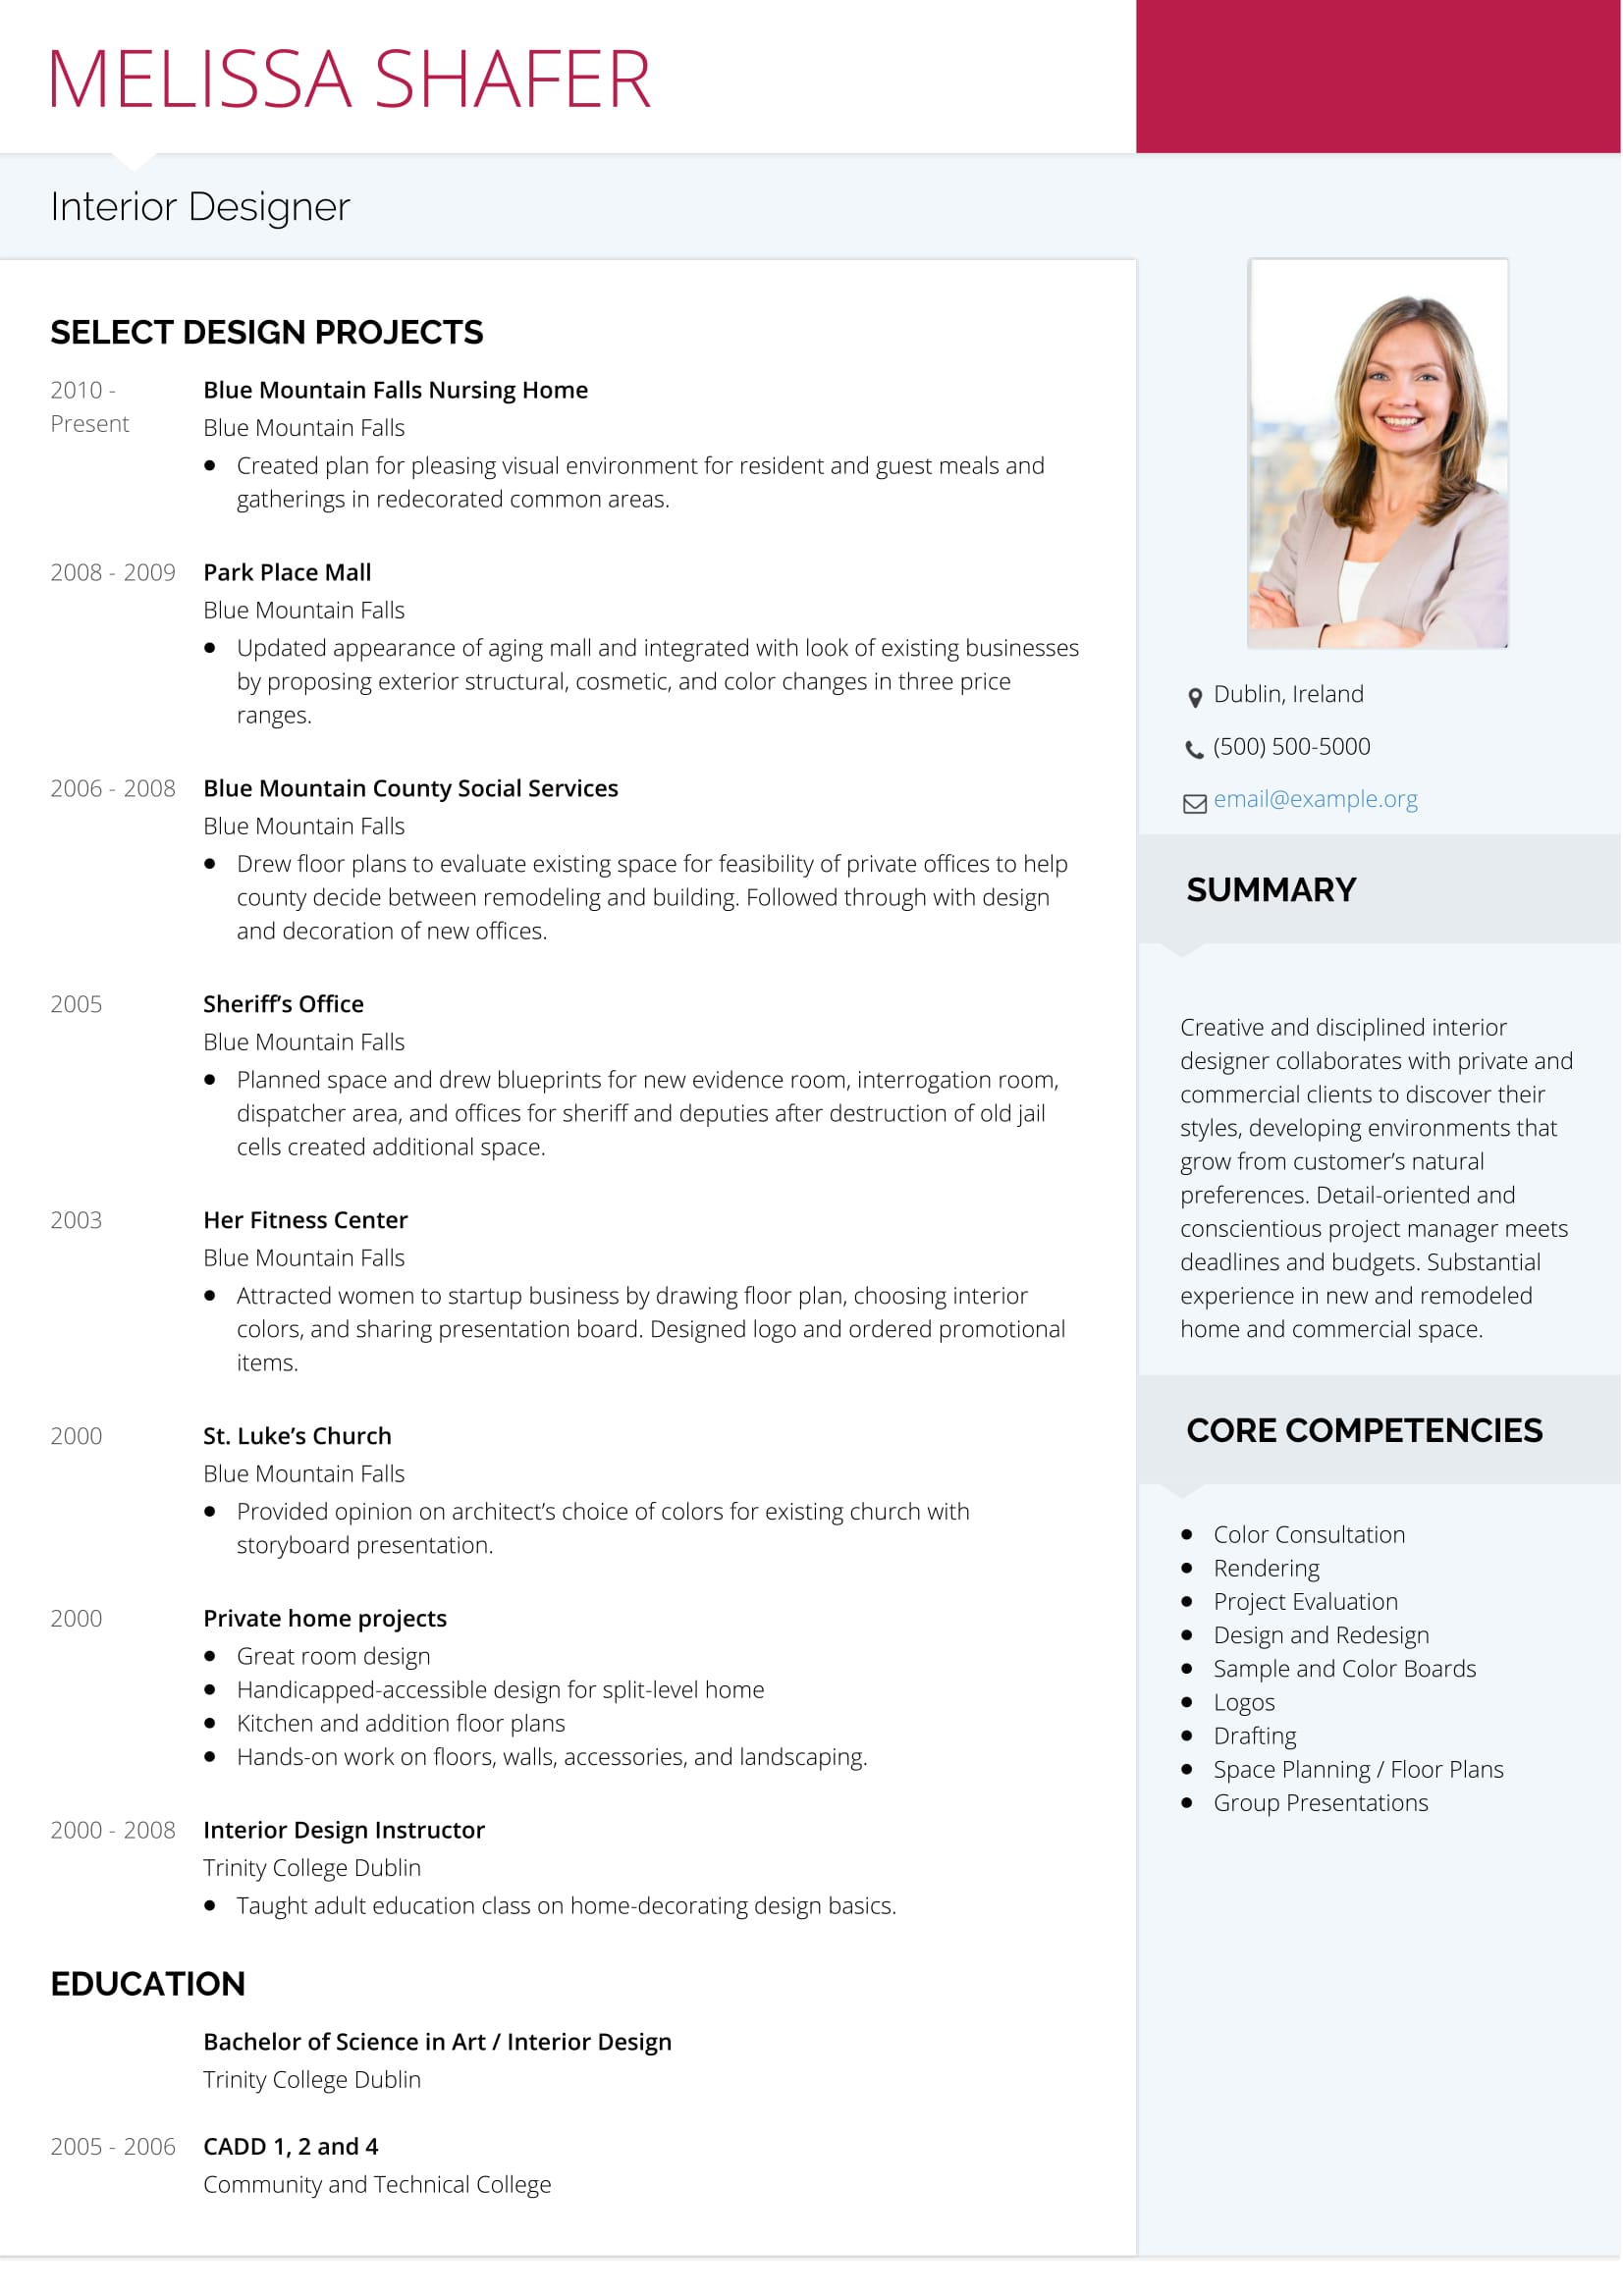 20 EyeCatching Designer Resume Templates to Get a Job  WiseStep